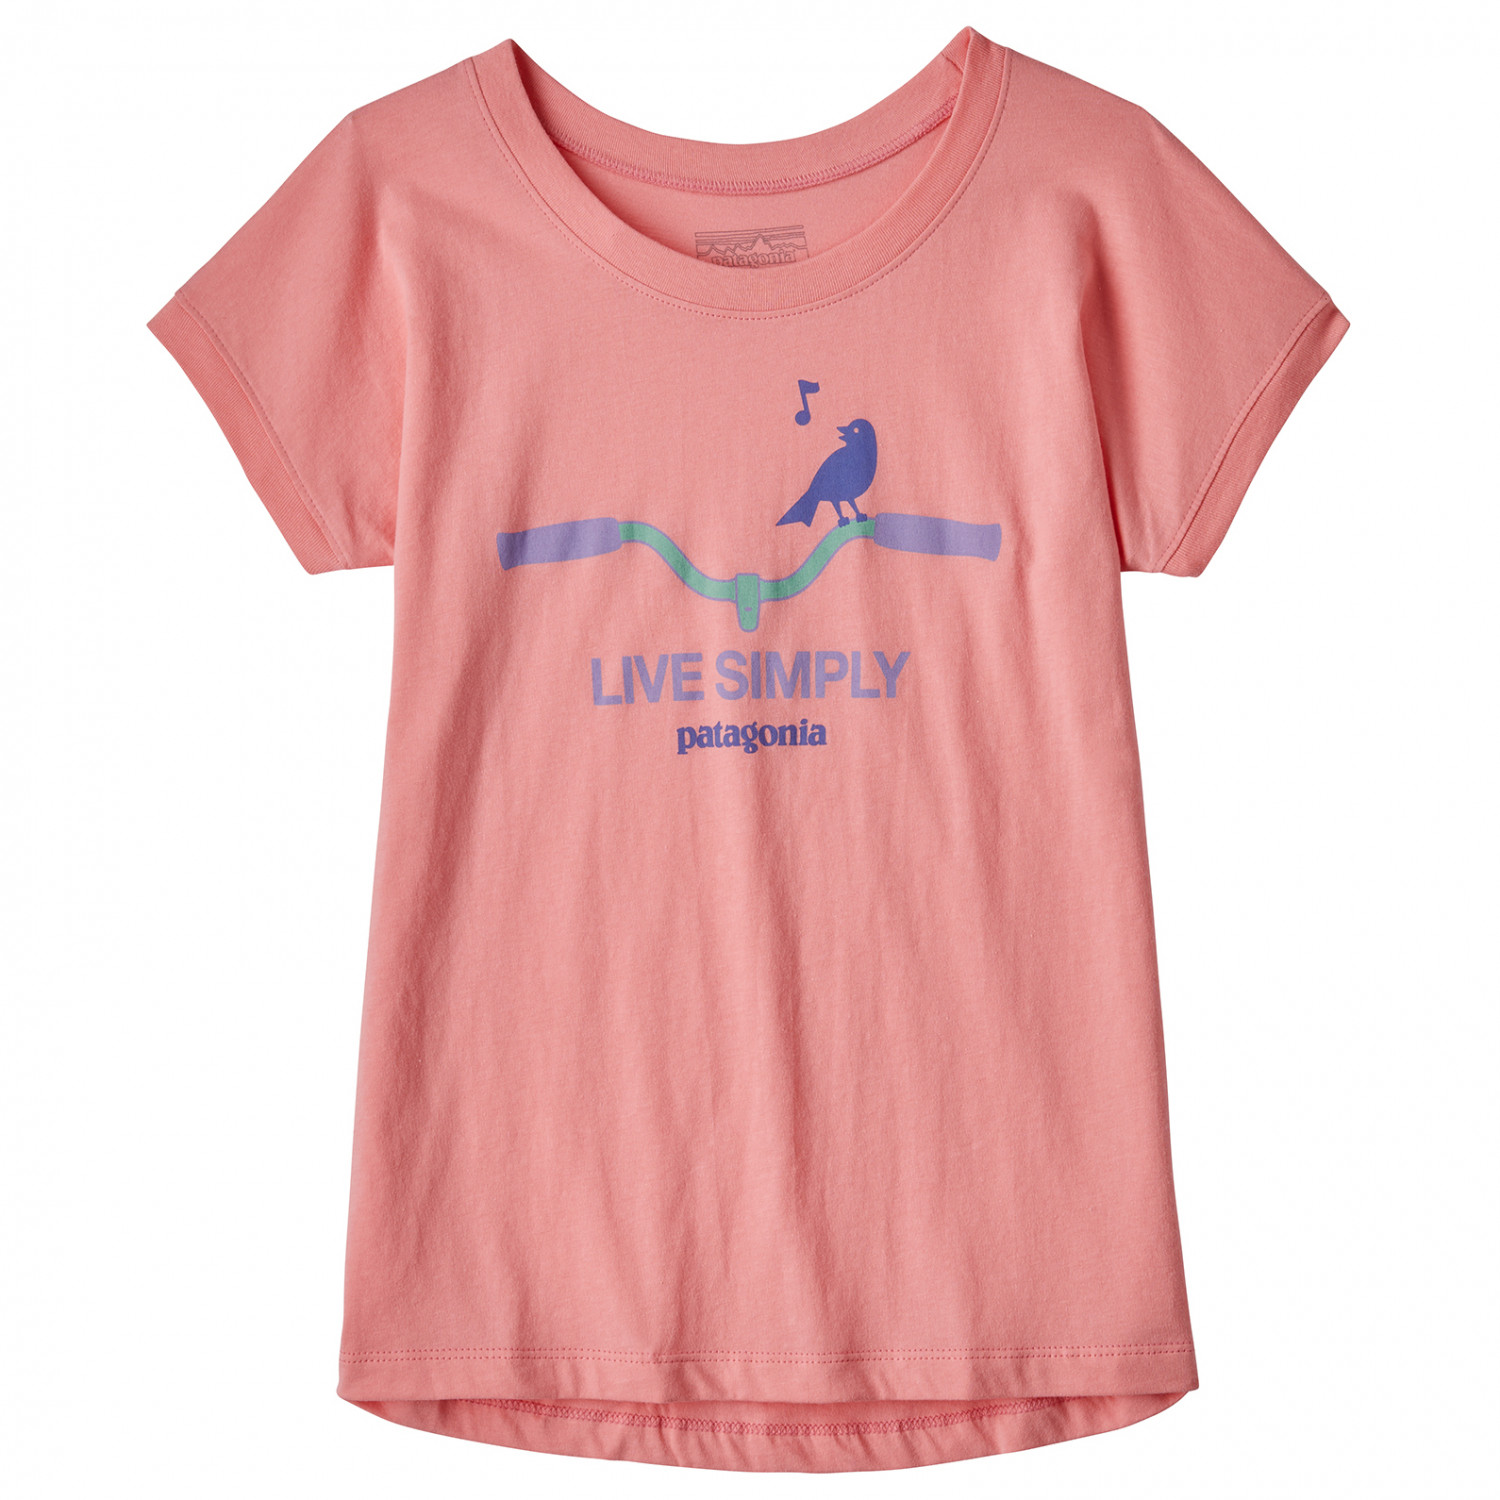 newest collection e0ccd 0afa7 Patagonia - Girls Graphic Organic T-Shirt - Fitz Roy Rainbow / Vjosa Green    M